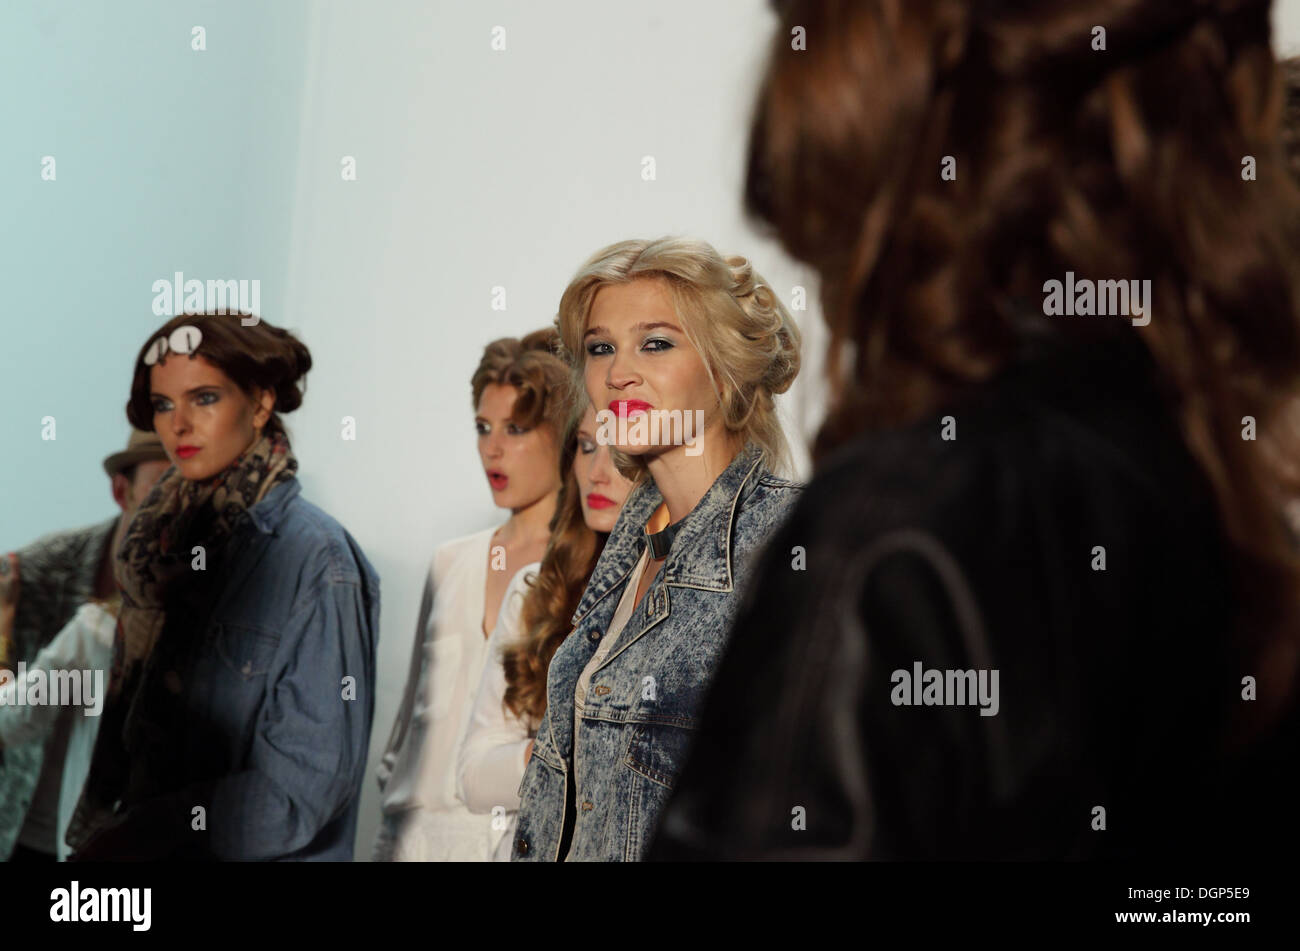 Berlin, Germany, Models backstage at Fashion Week Stock Photo